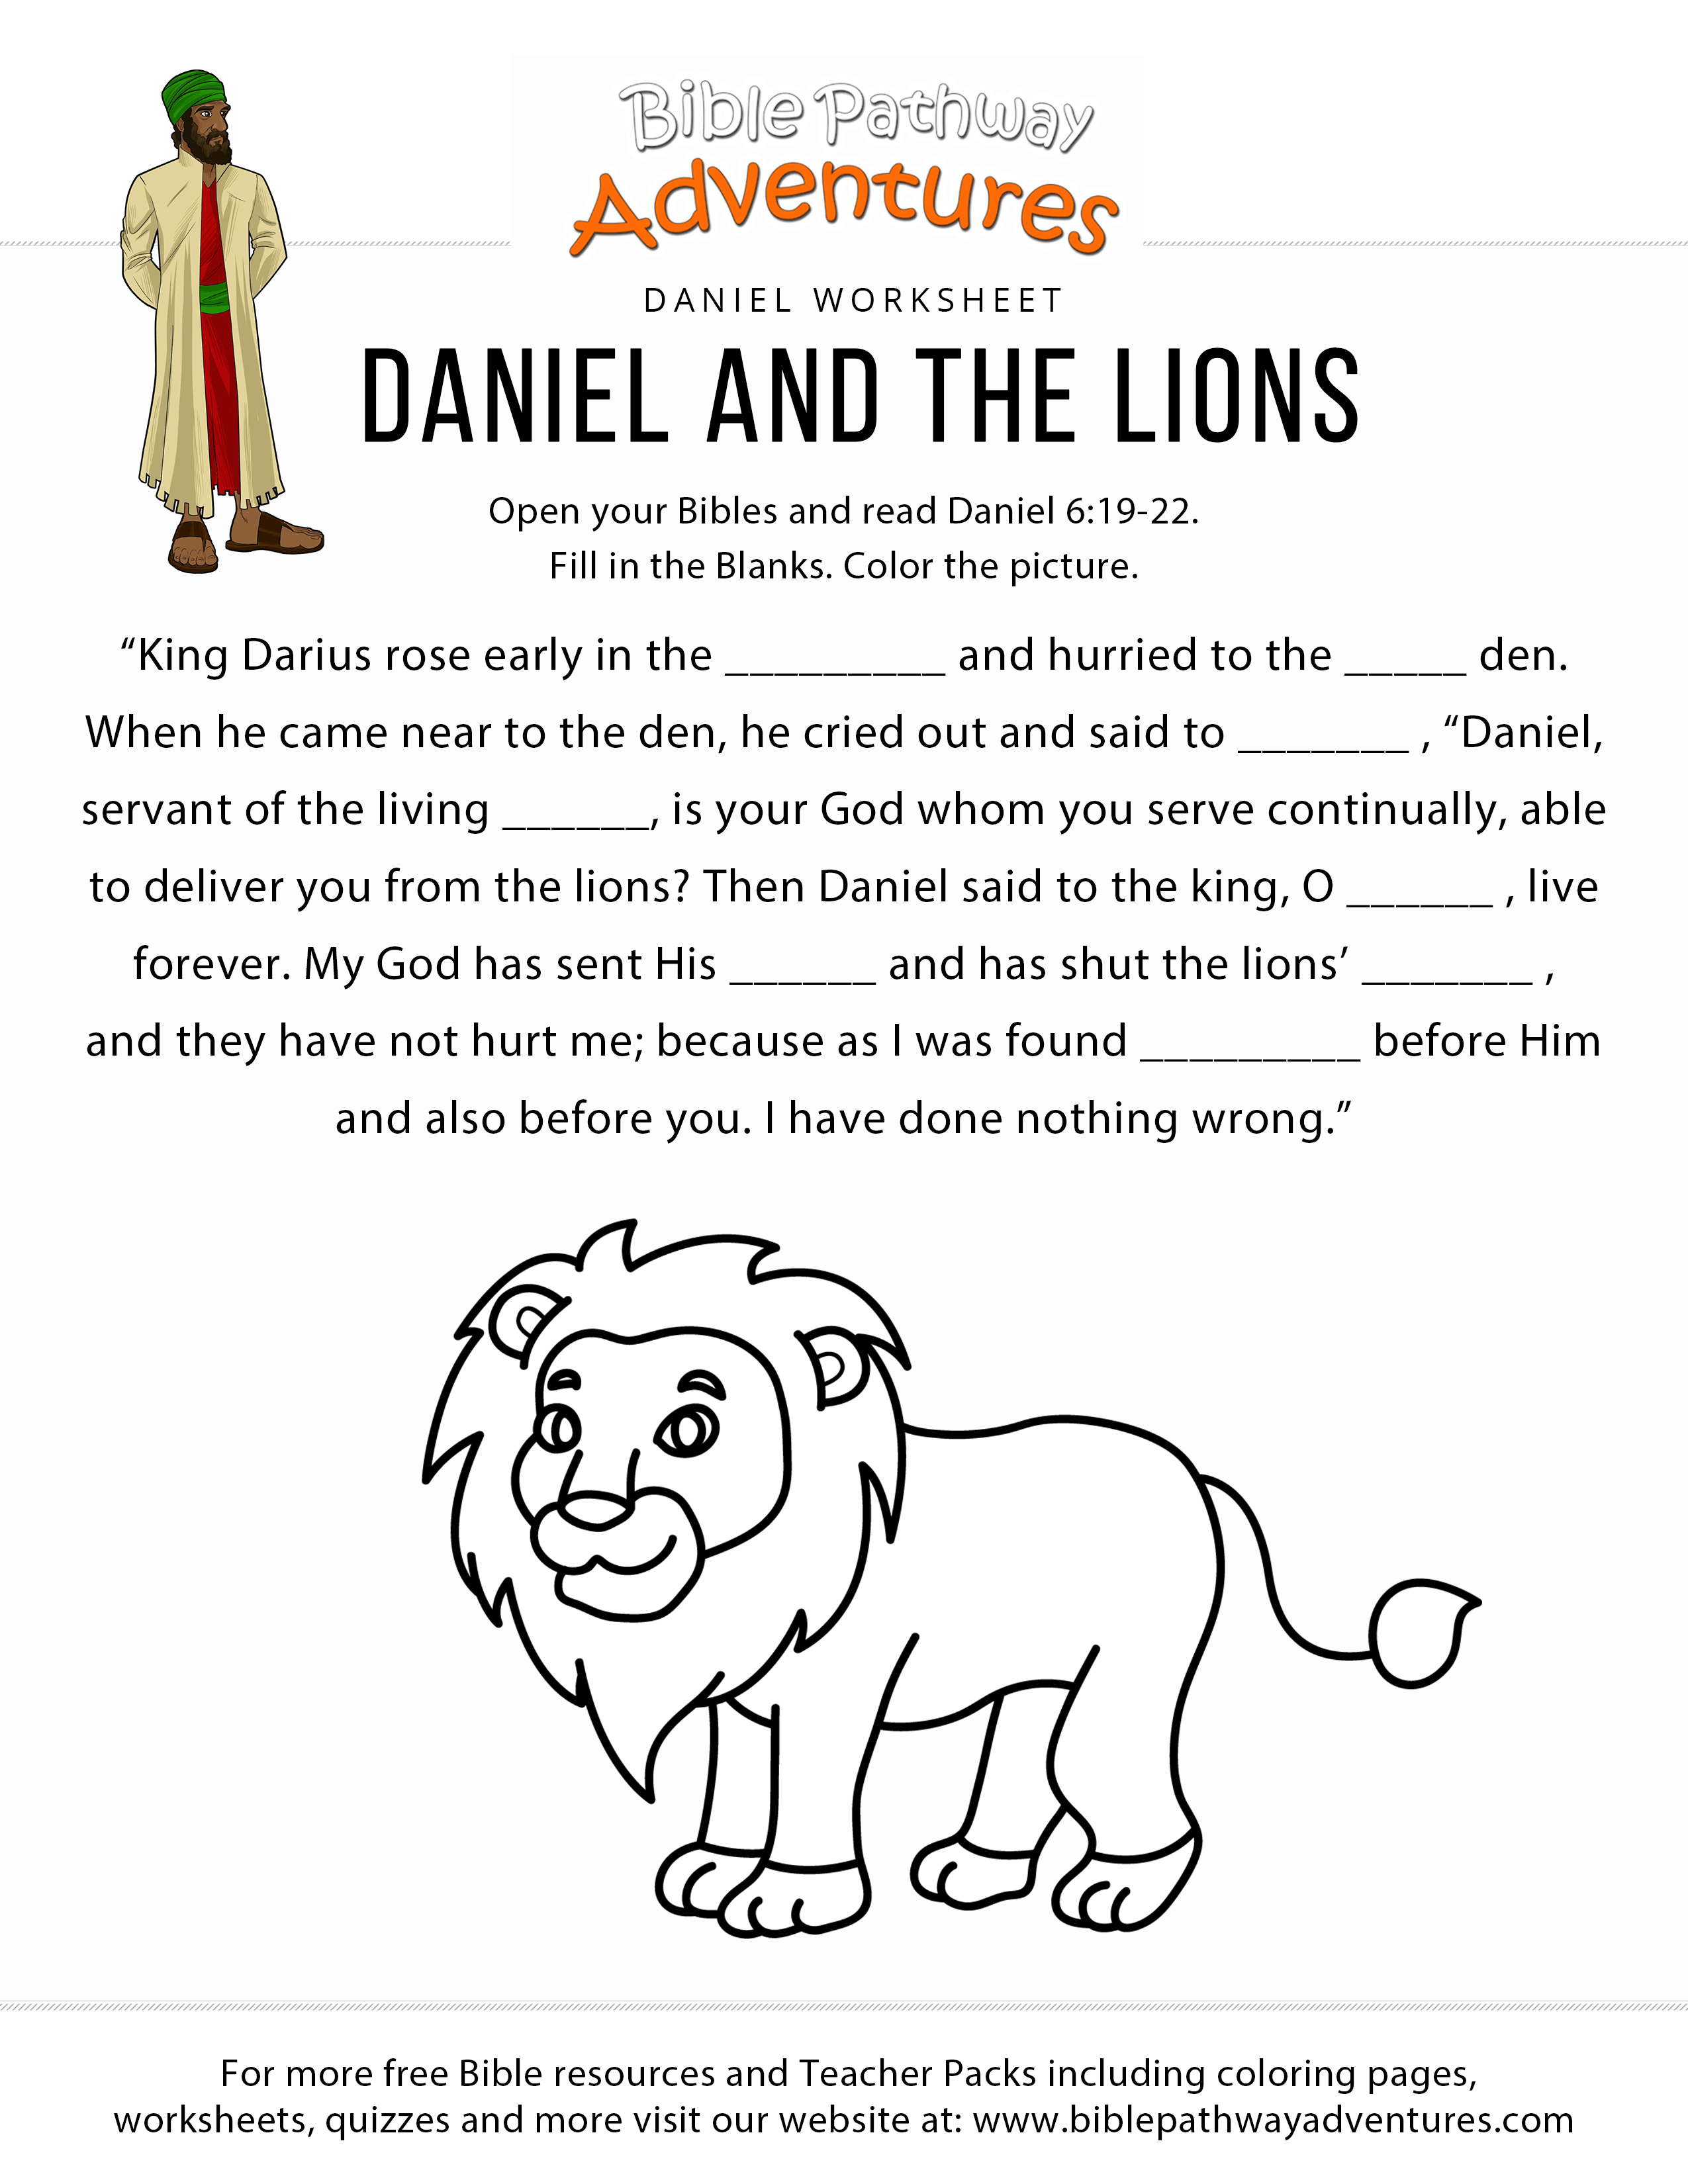 Daniel And The Lions Worksheet Bible Pathway Adventures